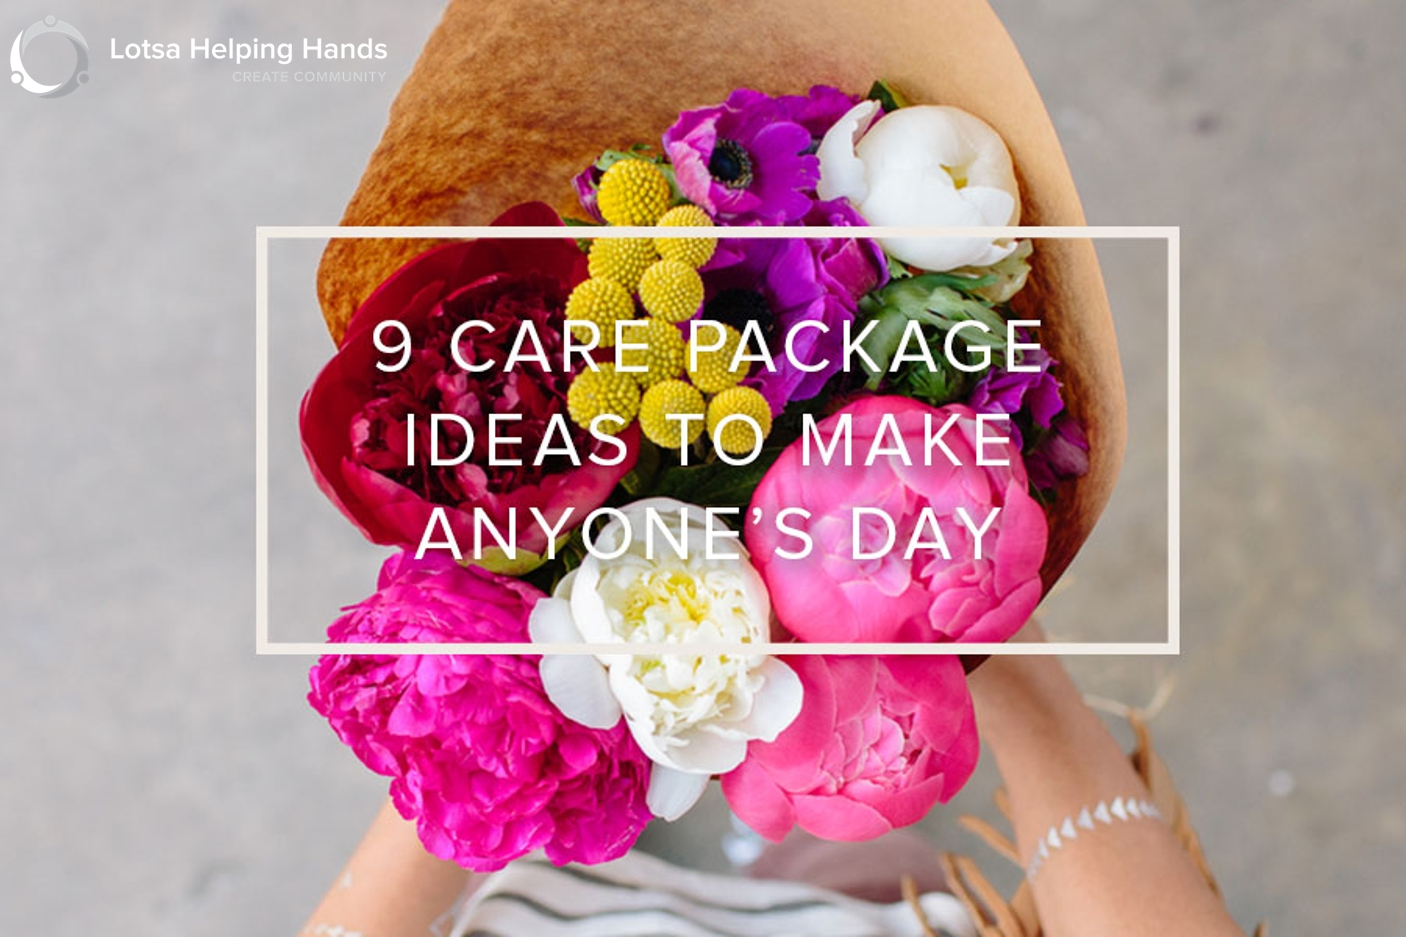 10 Cute Get Well Care Package Ideas 9 care package ideas to make anyones day lotsa helping hands 3 2021